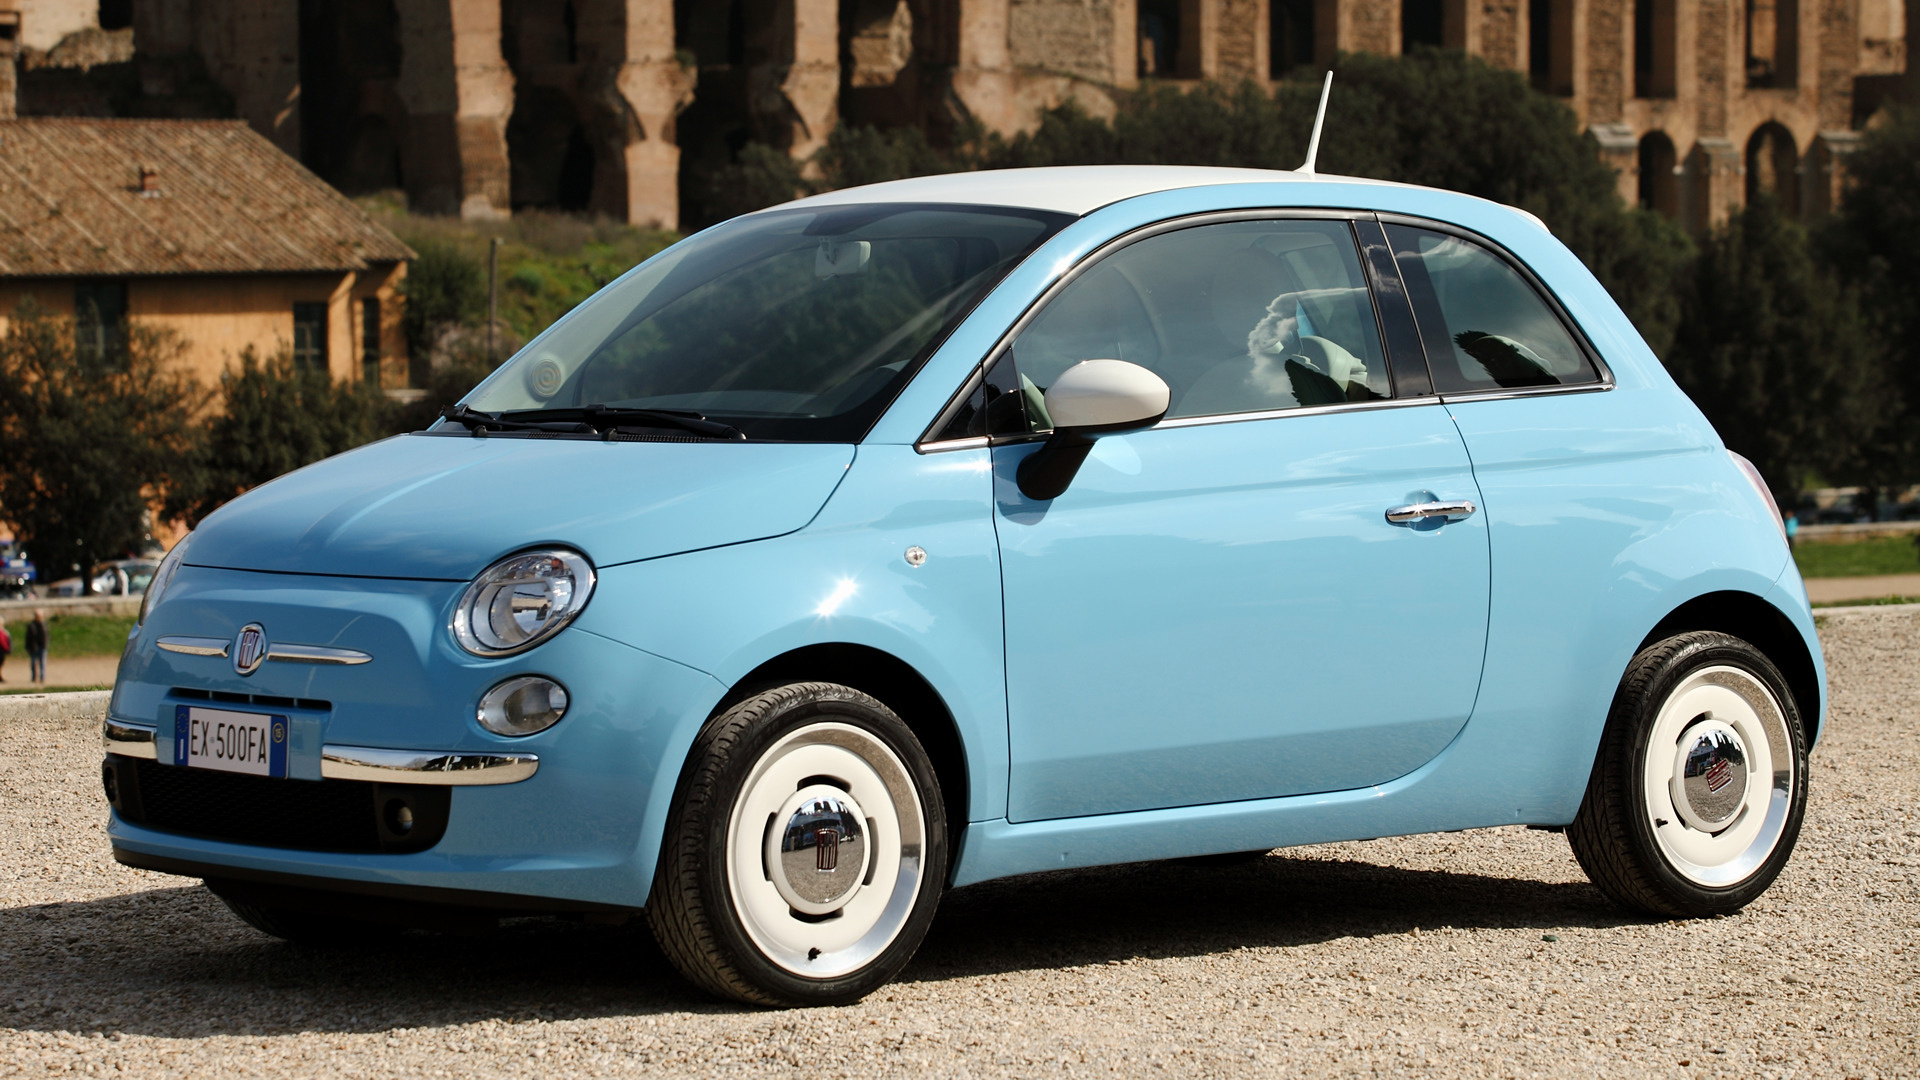 Blue Jaguar Cars Wallpapers Fiat 500 Vintage 57 2015 Wallpapers And Hd Images Car